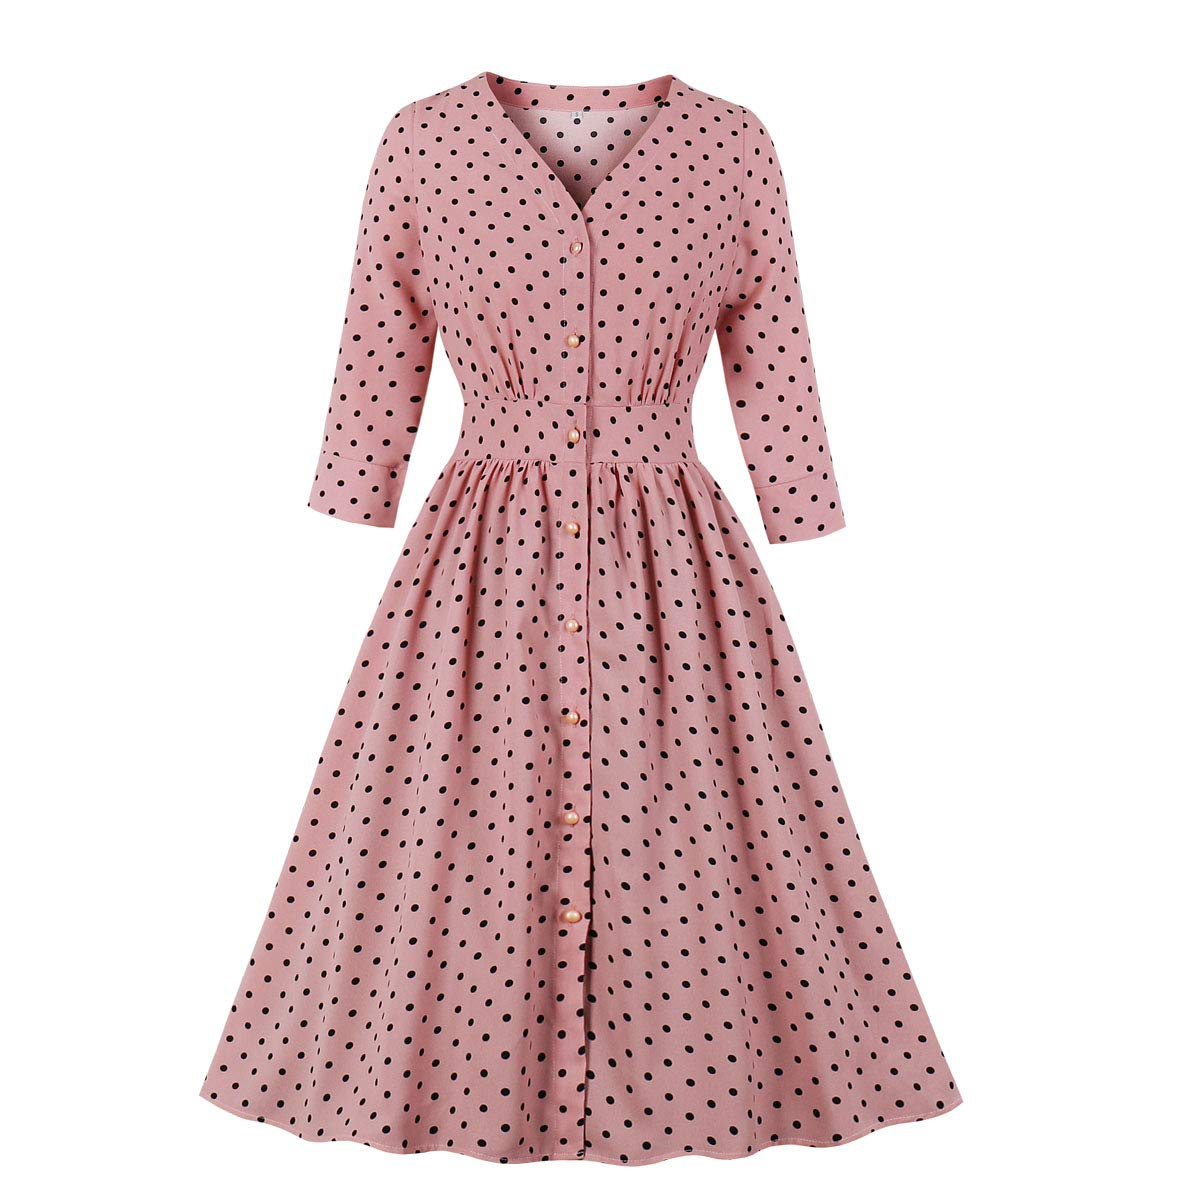 1940s Dresses | 40s Dress, Swing Dress Wellwits Womens Split Neck Floral Button 1940s Day 1950s Vintage Tea Dress $26.99 AT vintagedancer.com